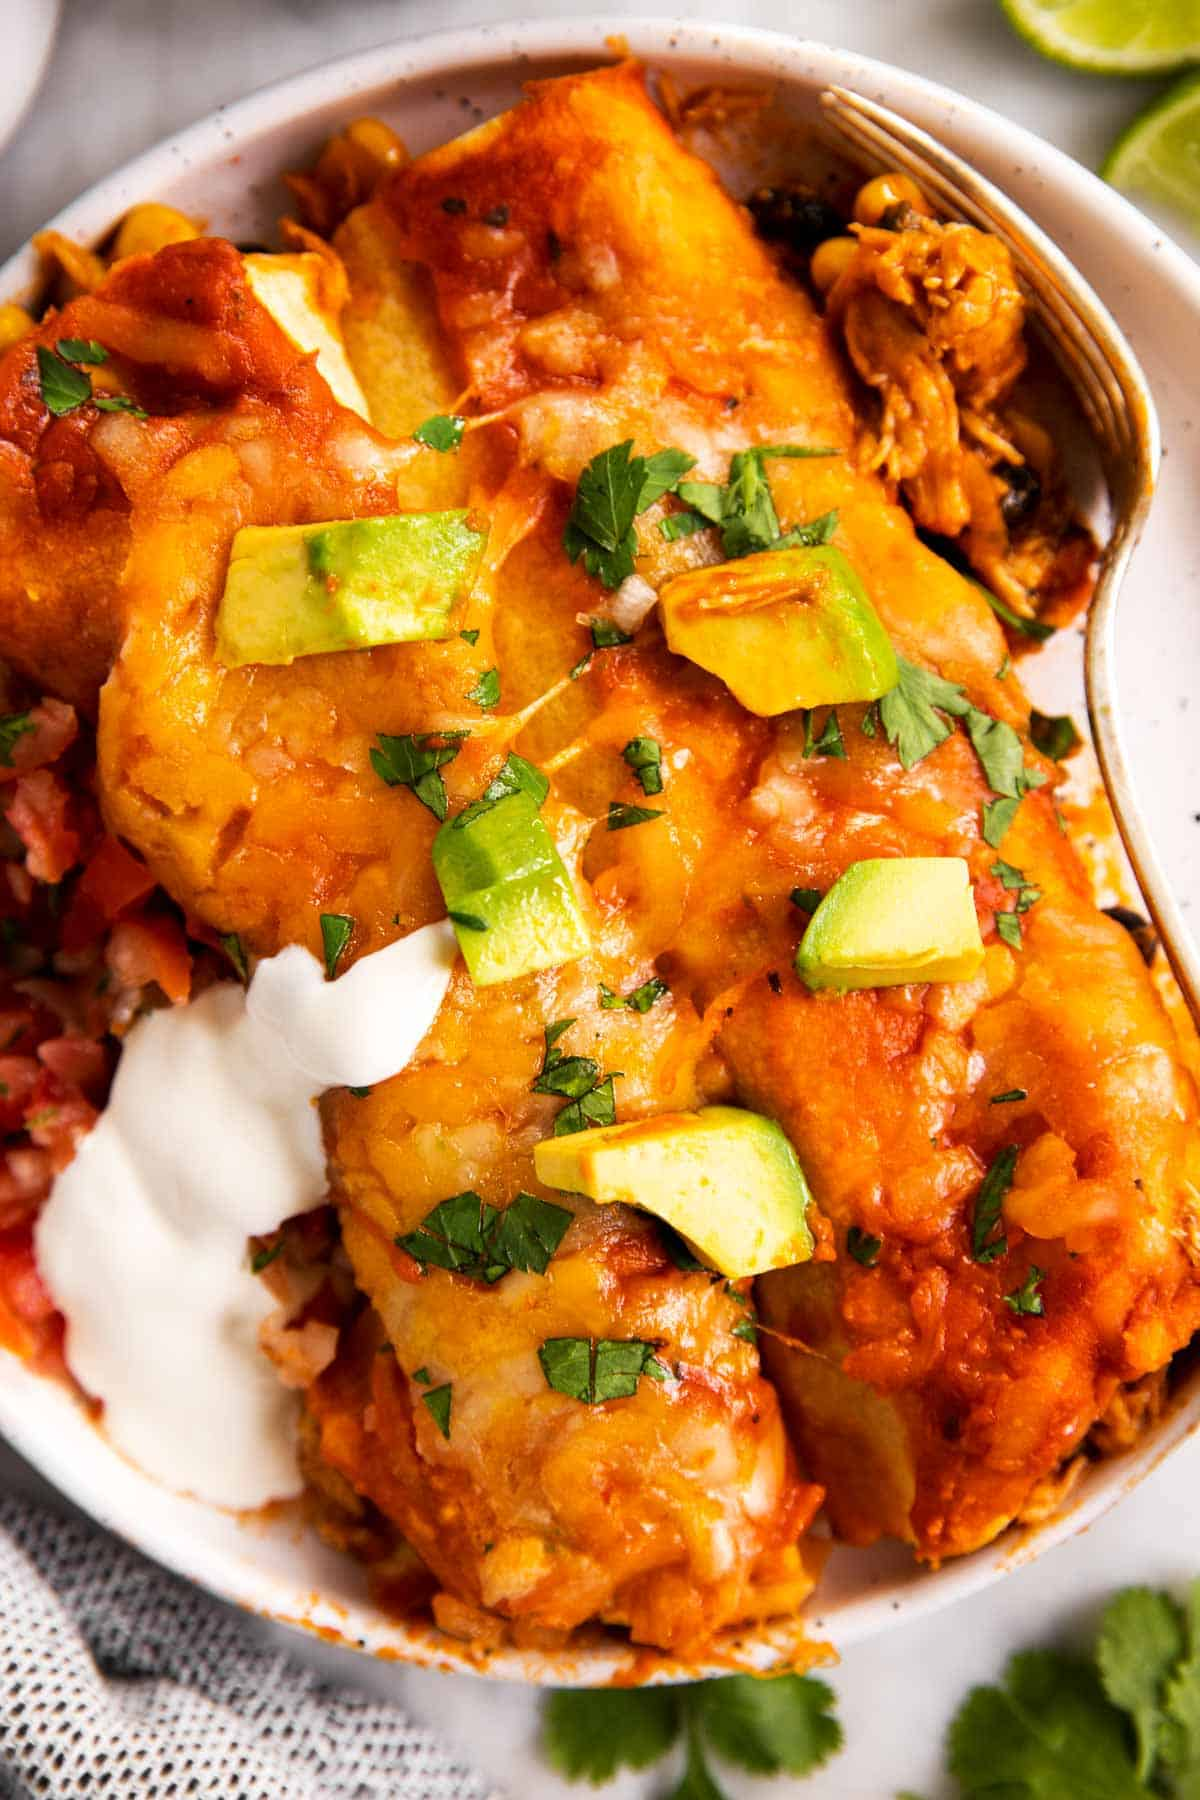 overhead view of two chicken enchiladas on white plate with avocado and sour cream